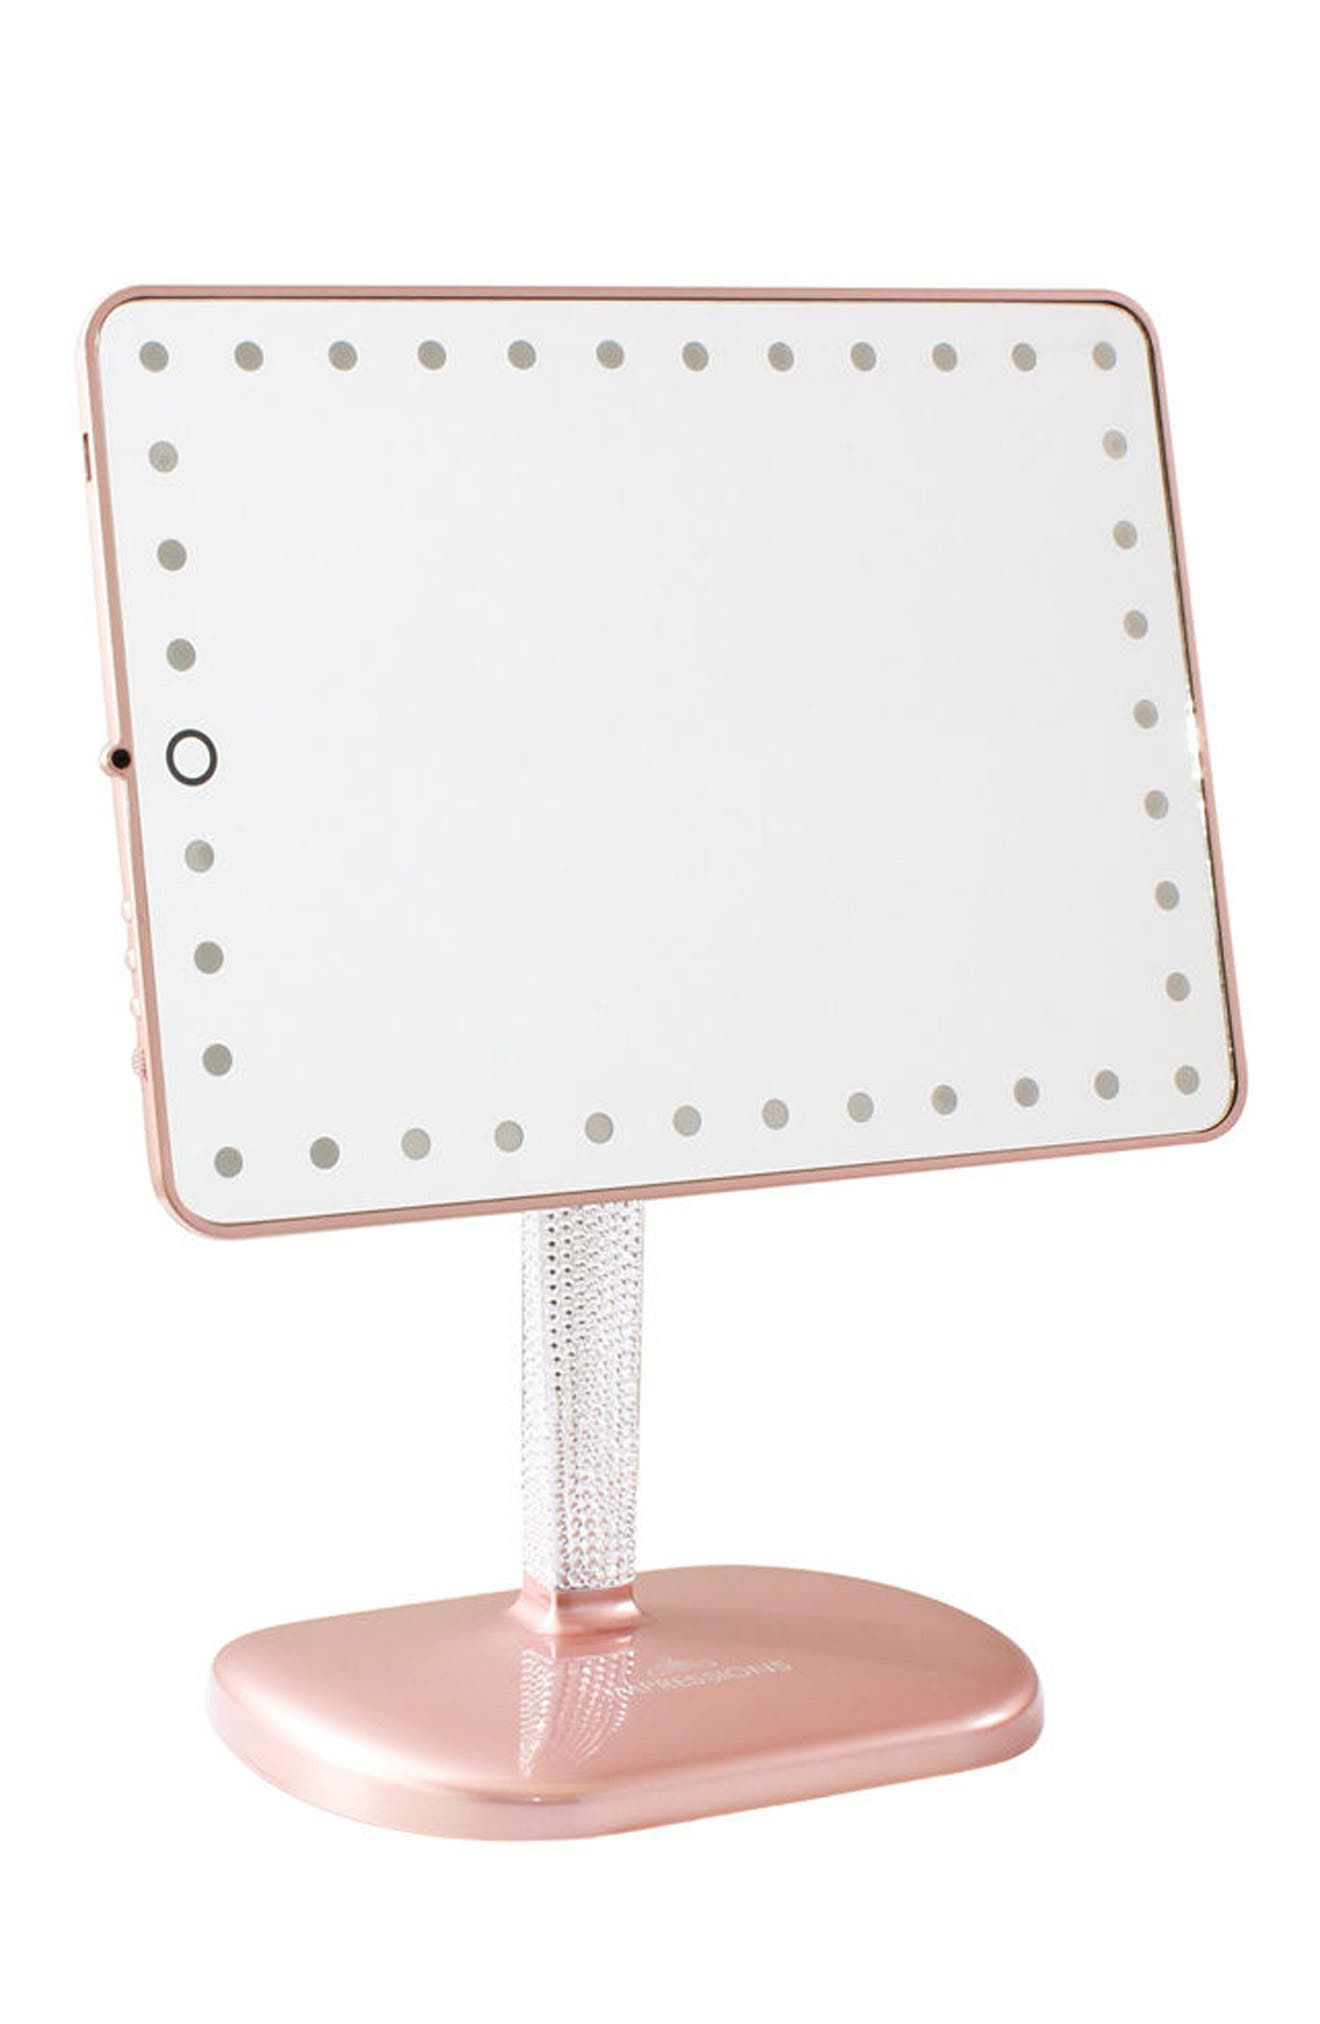 Bling Touch Pro LED Makeup Mirror with Bluetooth<sup>®</sup> Audio & Speakerphone,                             Alternate thumbnail 2, color,                             Rose Gold Bling Edition